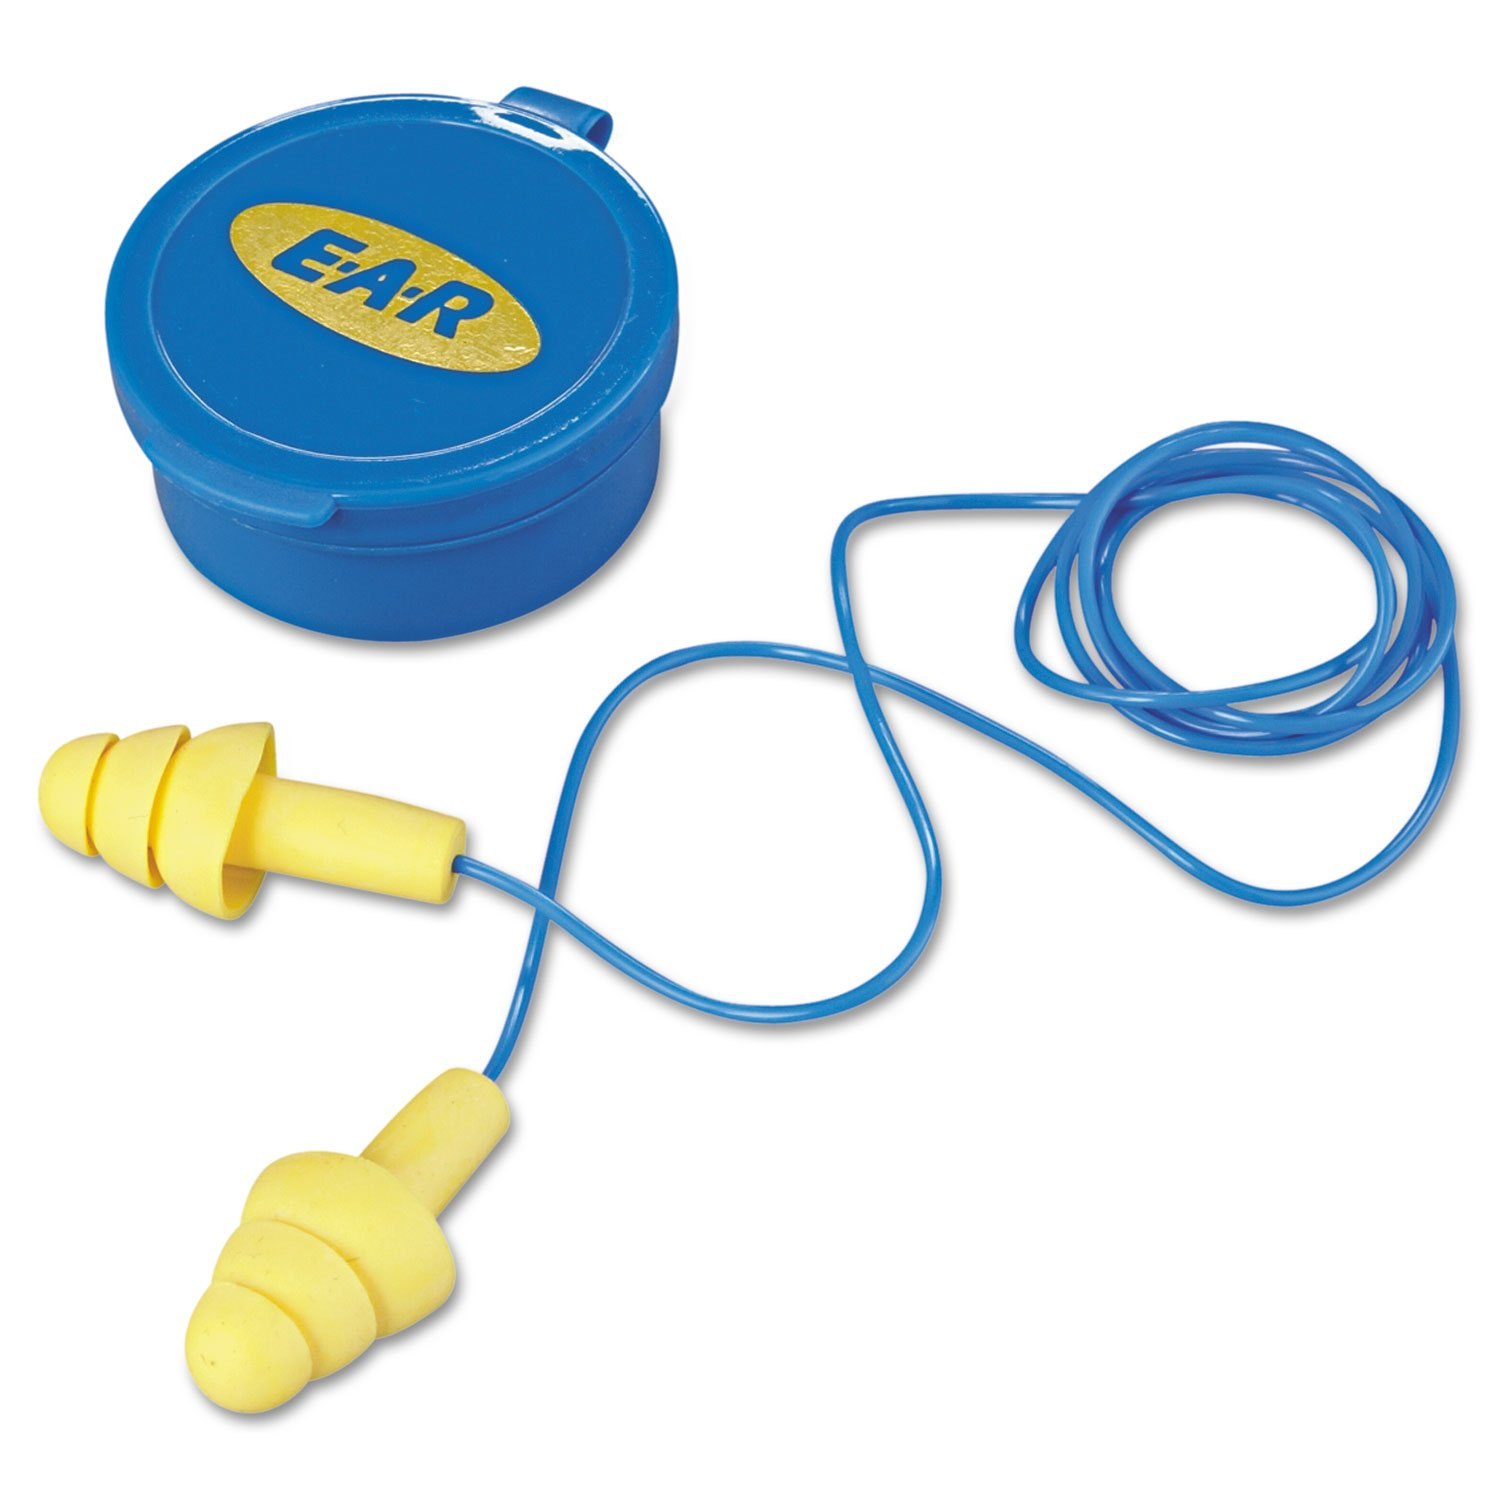 25dB Rated Reusable Flanged 3M 340-4002 E-A-R™ UltraFit™ Corded Ear Plugs